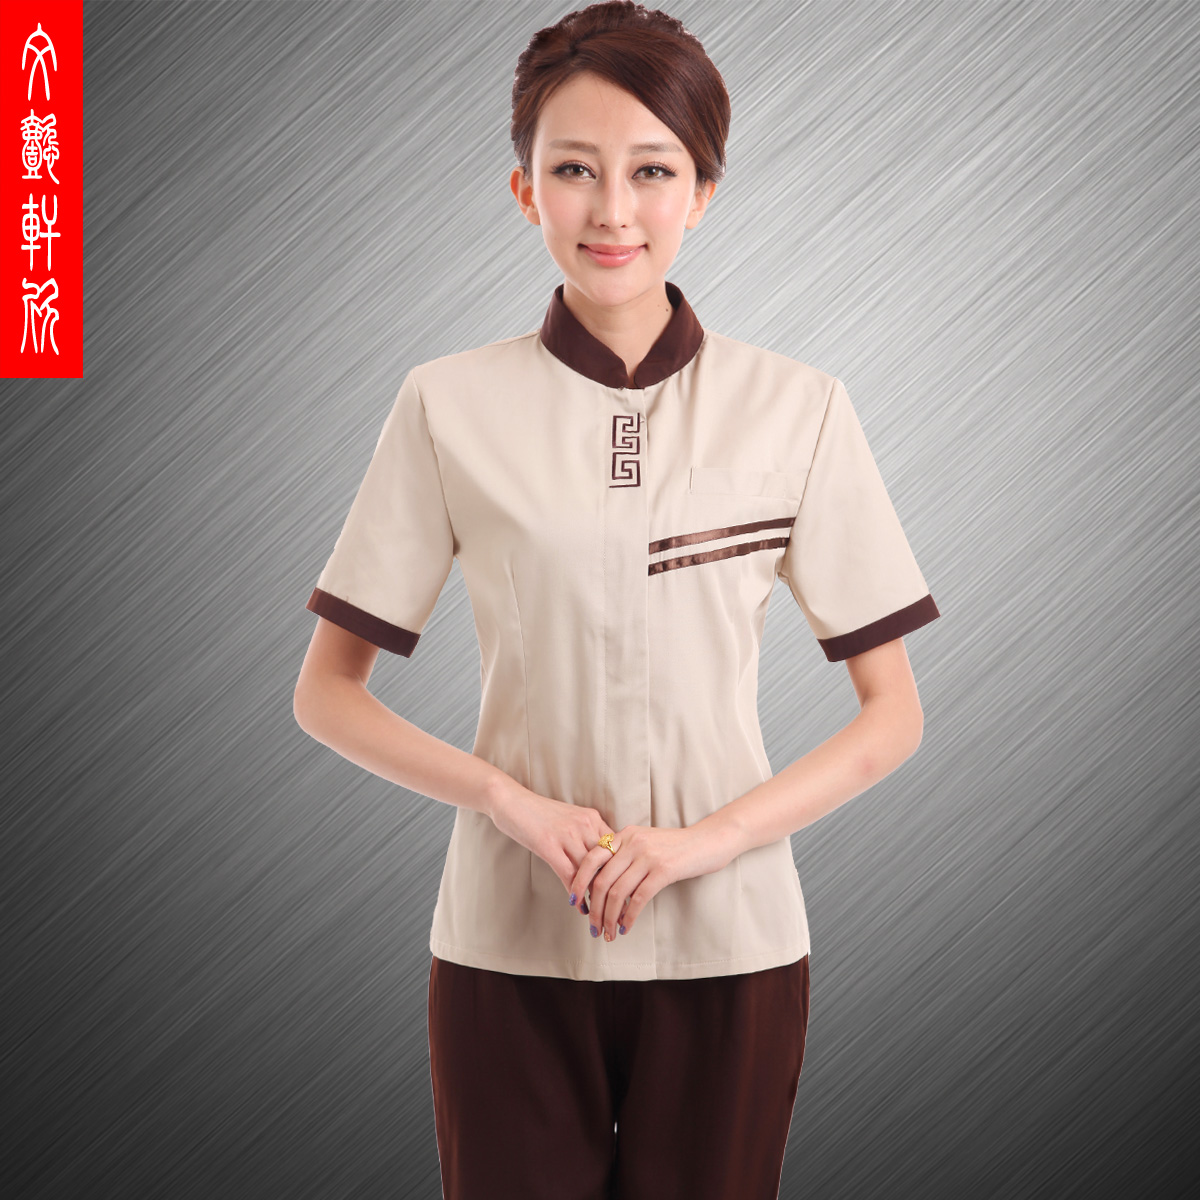 10sets [Top-pant] female cleaning service clothes pa uniforms Property Cleaner work clothes The gardener overalls full set(China (Mainland))